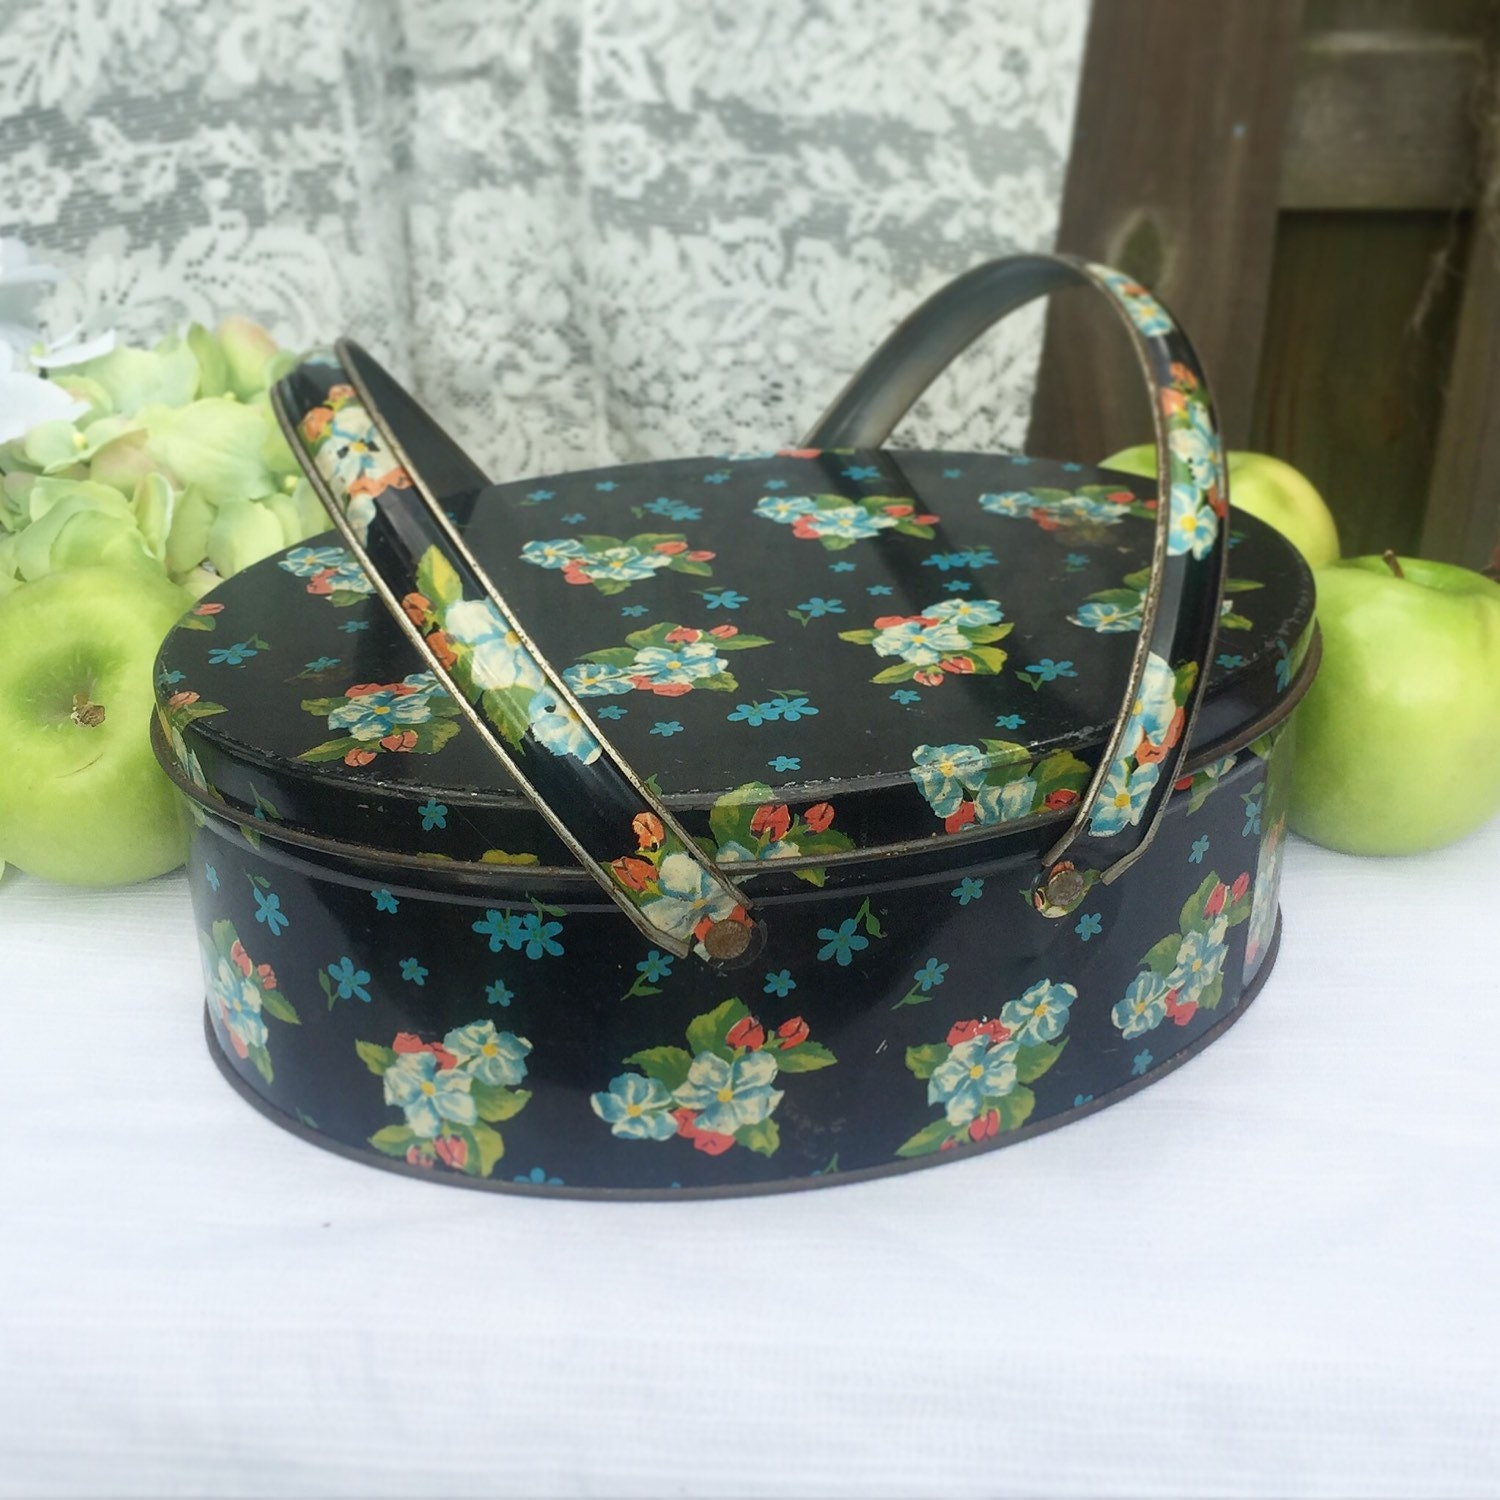 Decorative Box Lunches : Lovely mid century floral tin basket decorative box lunch